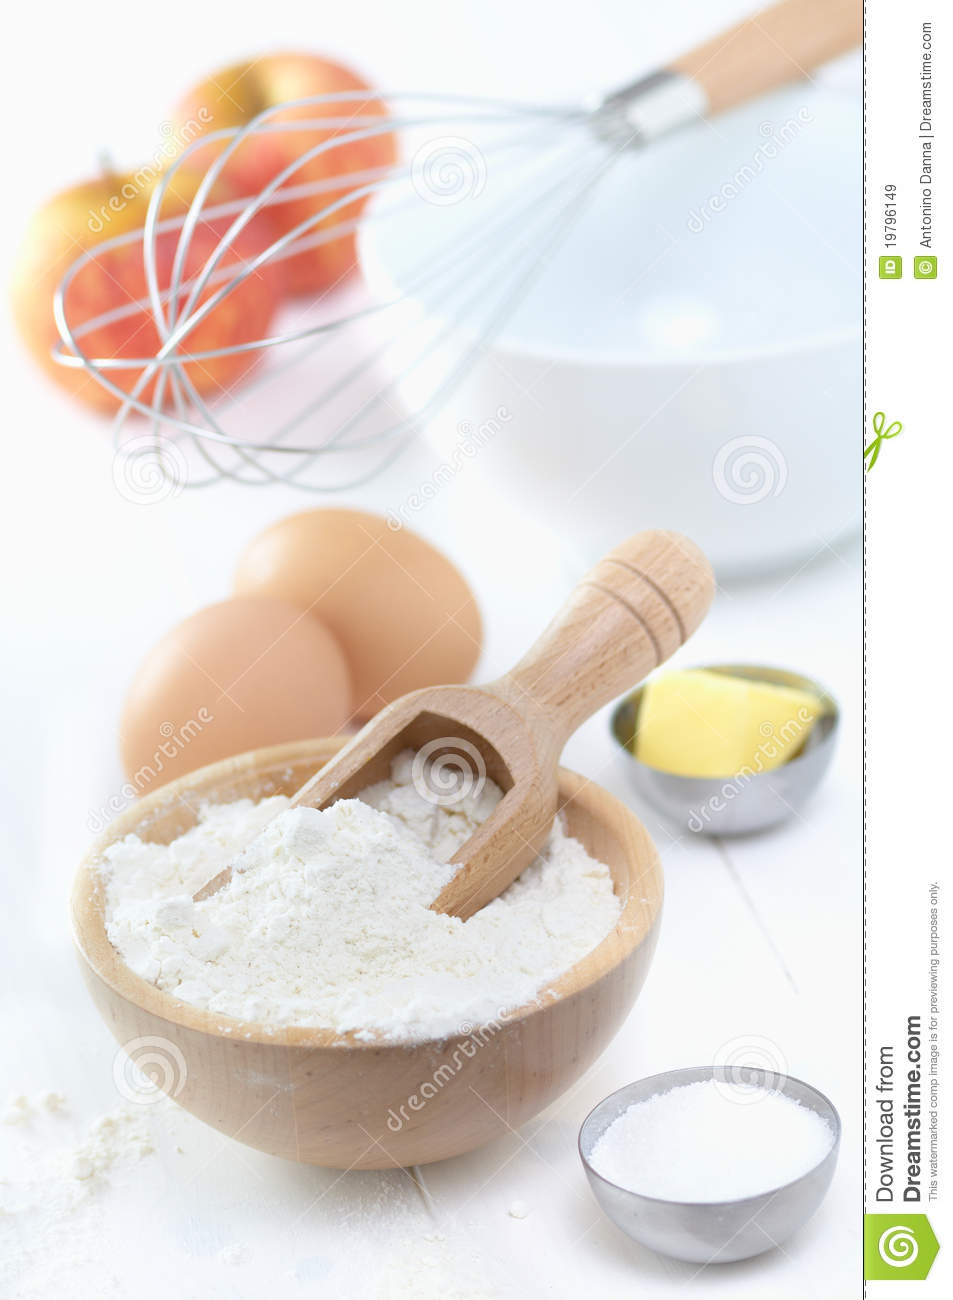 Ingredients to make a cake royalty free stock images for What are the ingredients for making cake